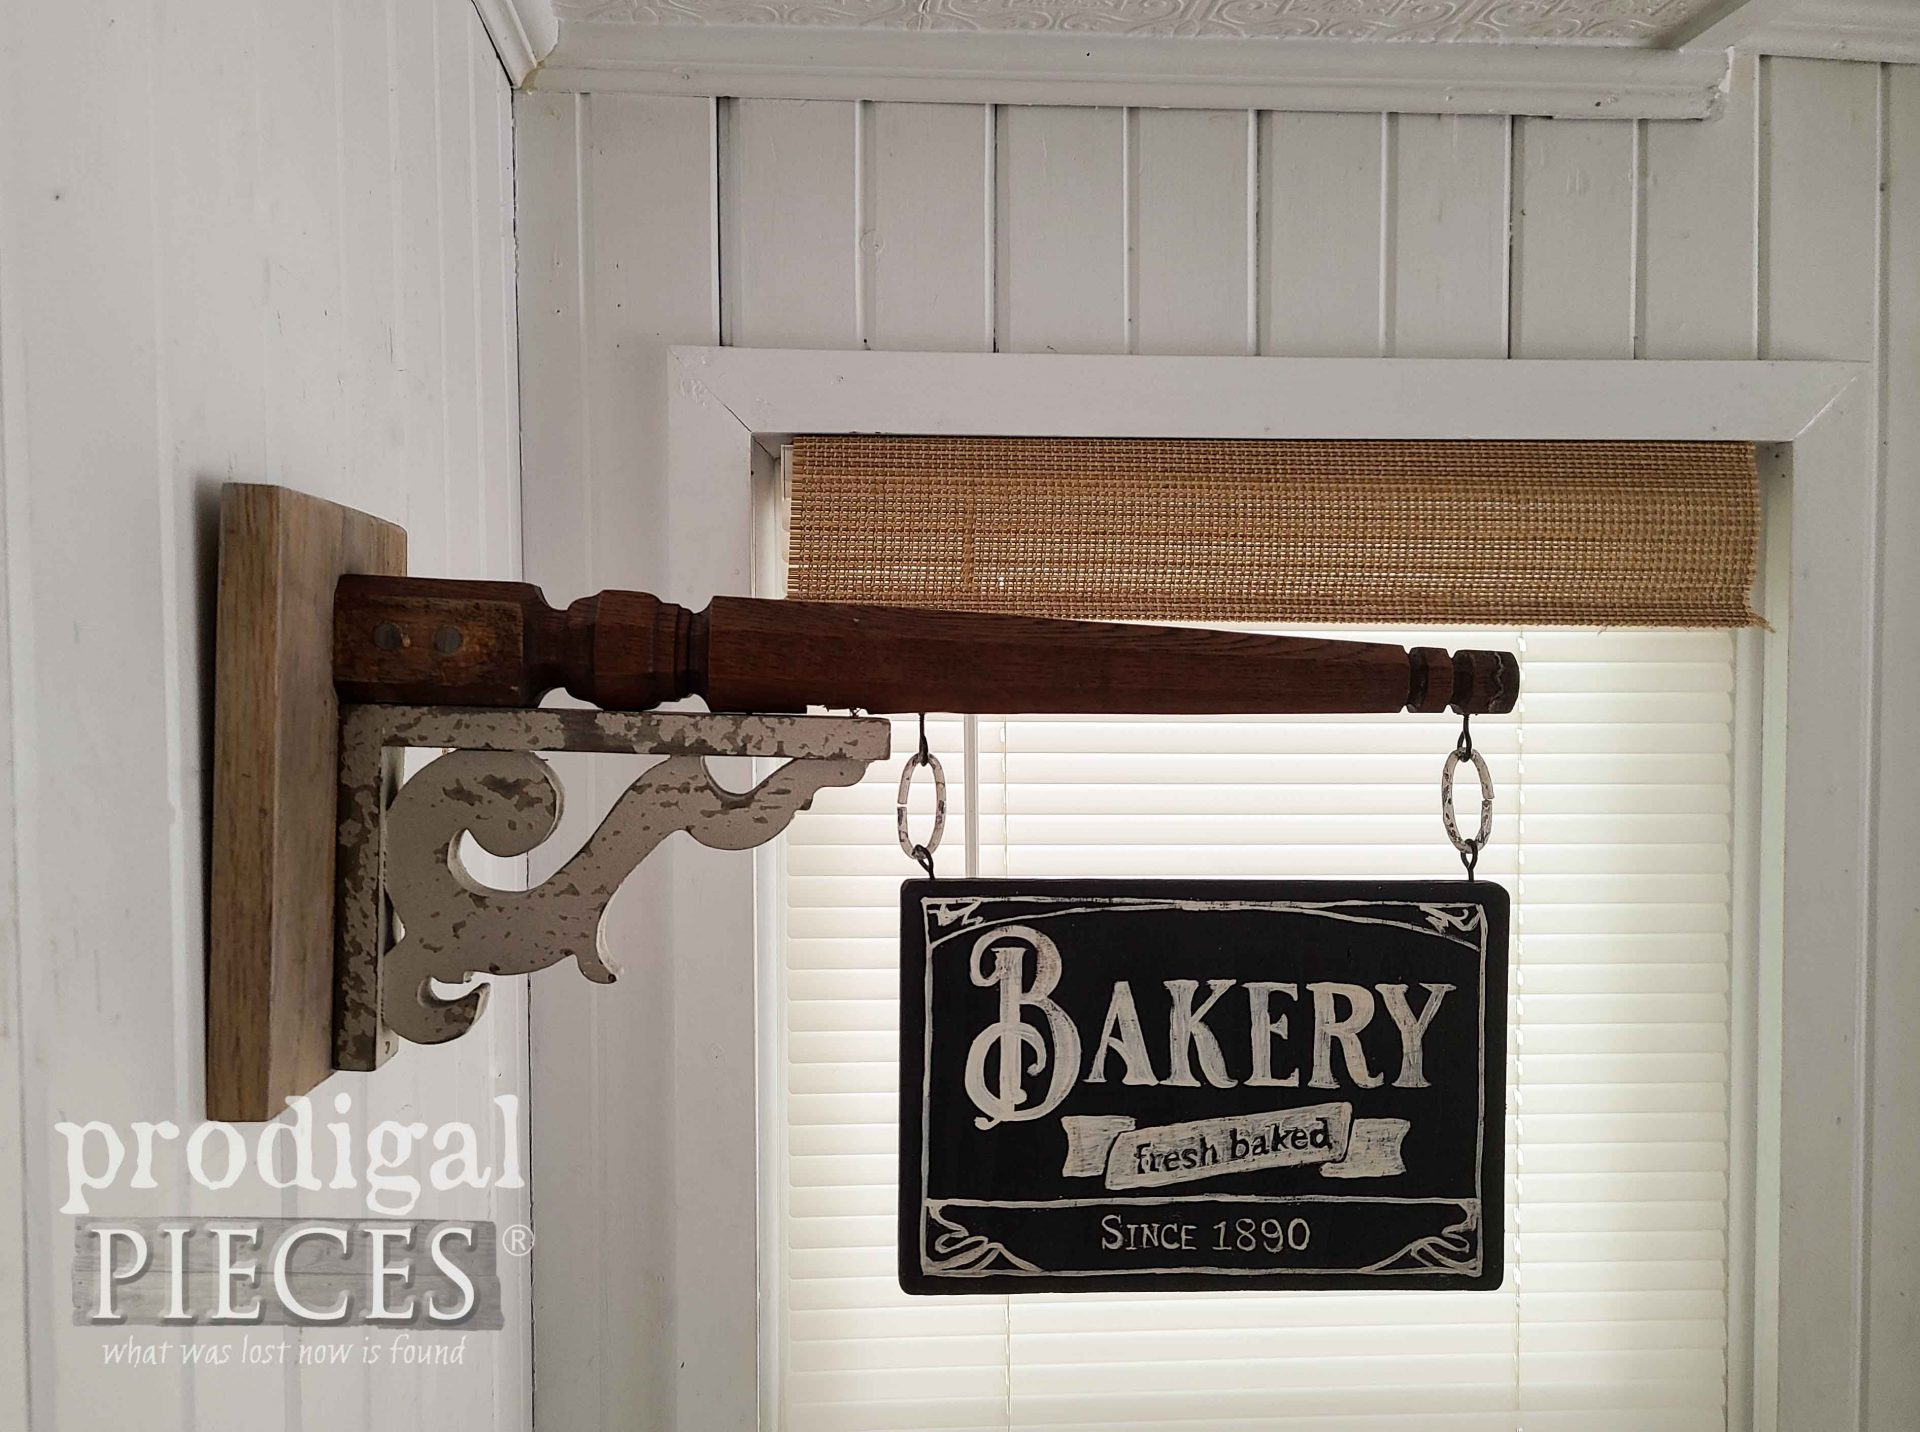 Farmhouse Bakery Sign from Upcycled Chair Legs by Larissa of Prodigal Pieces | prodigalpieces.com #prodigalpieces #diy #home #homedecor